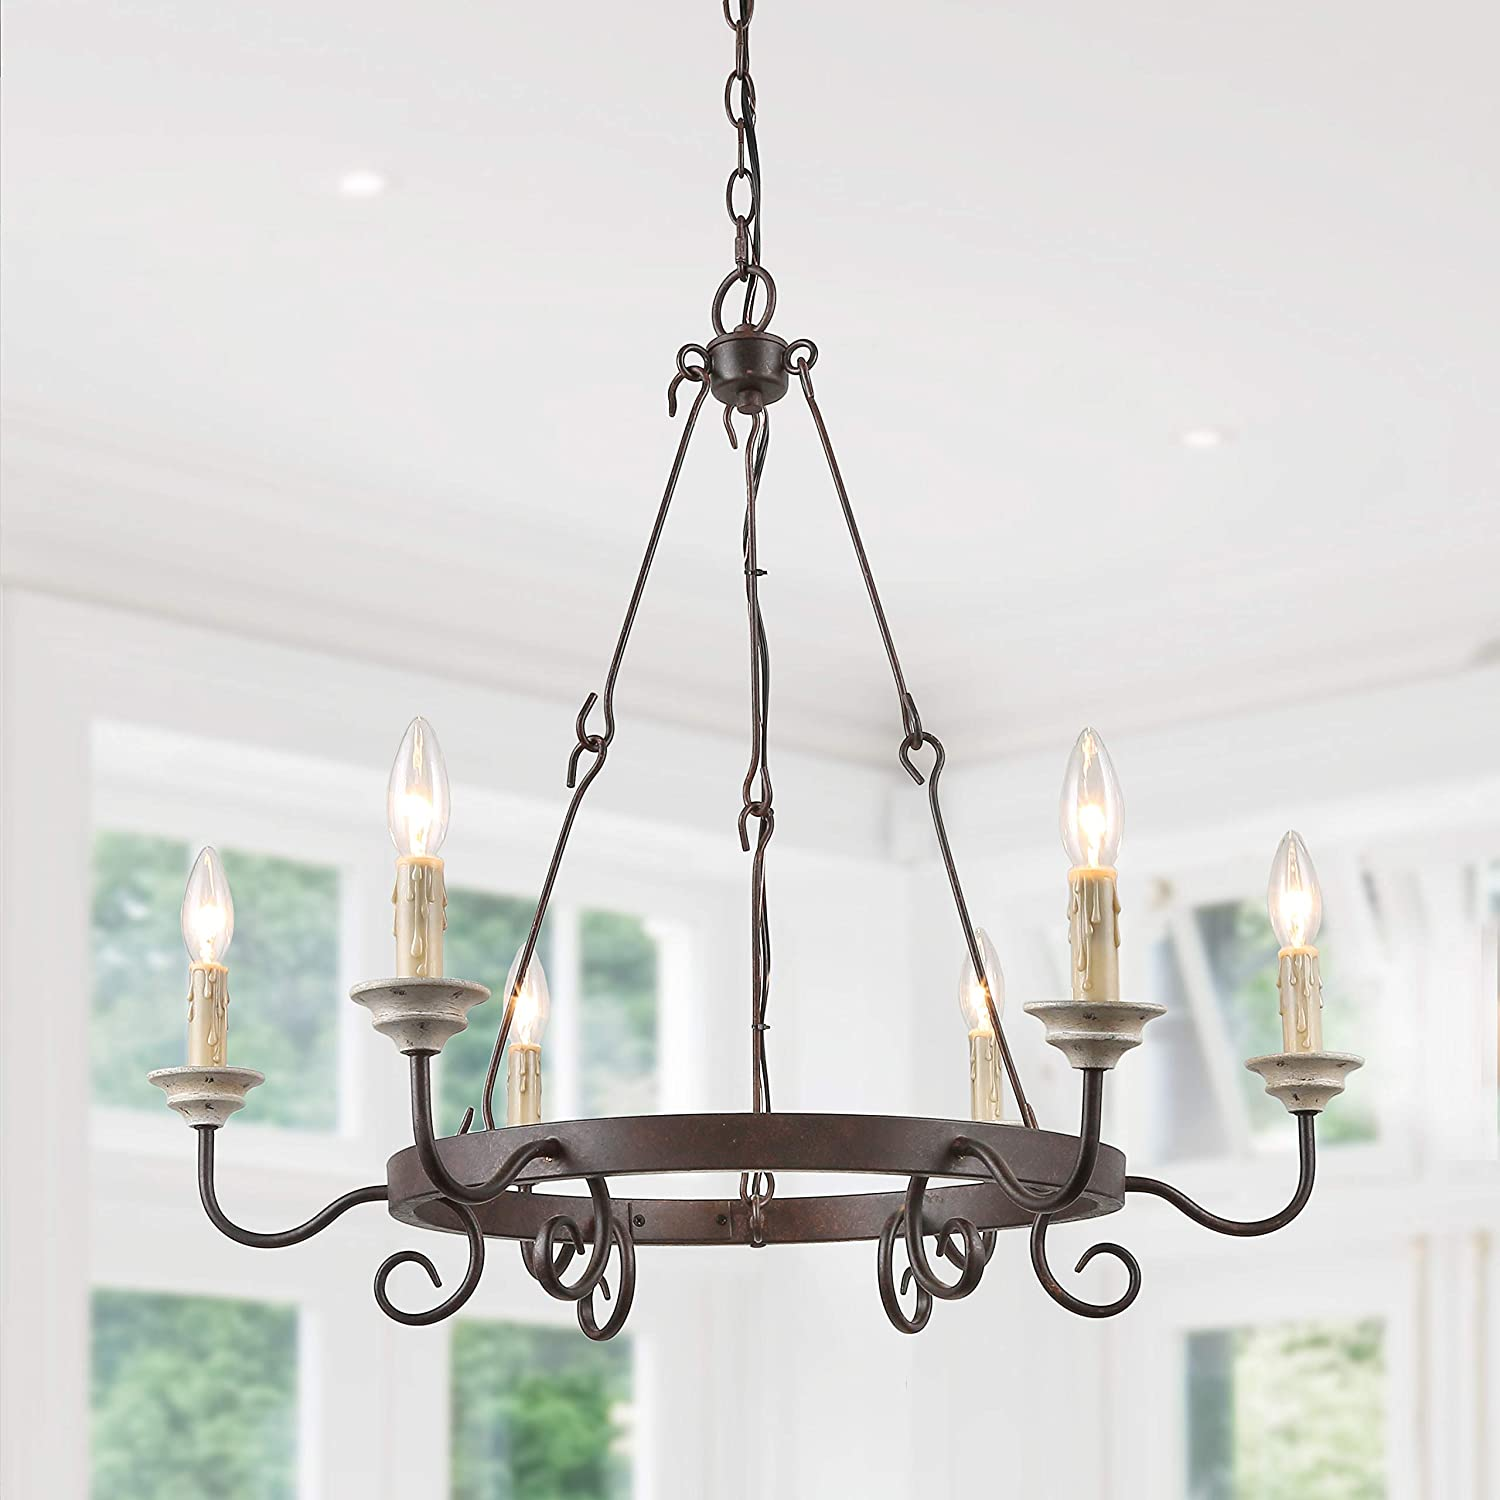 Laluz french country chandeliers for living room 6 light rusty wagon wheel kitchen island lighting for dining room 28 3 l x 26 4 h